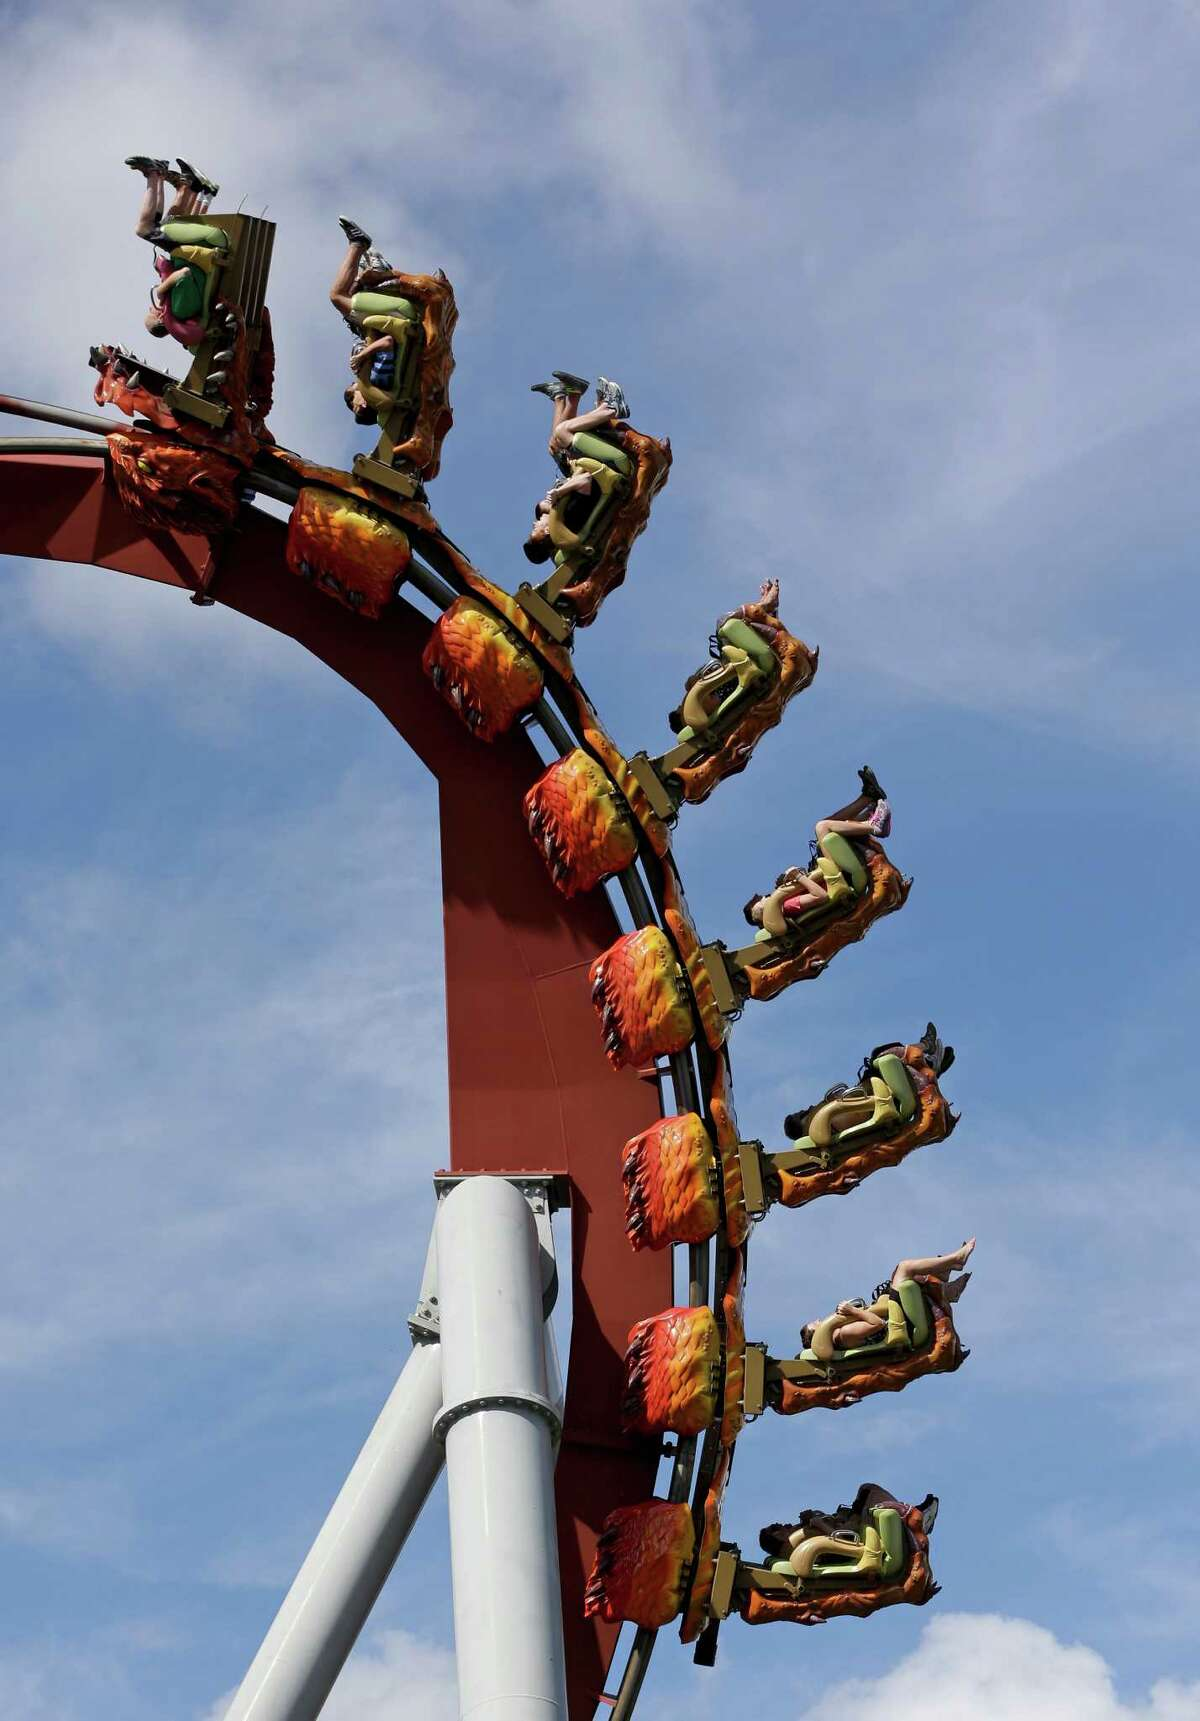 Park guests ride the Dragon Challenge roller coaster at Universal Studios in Orlando, Fla.